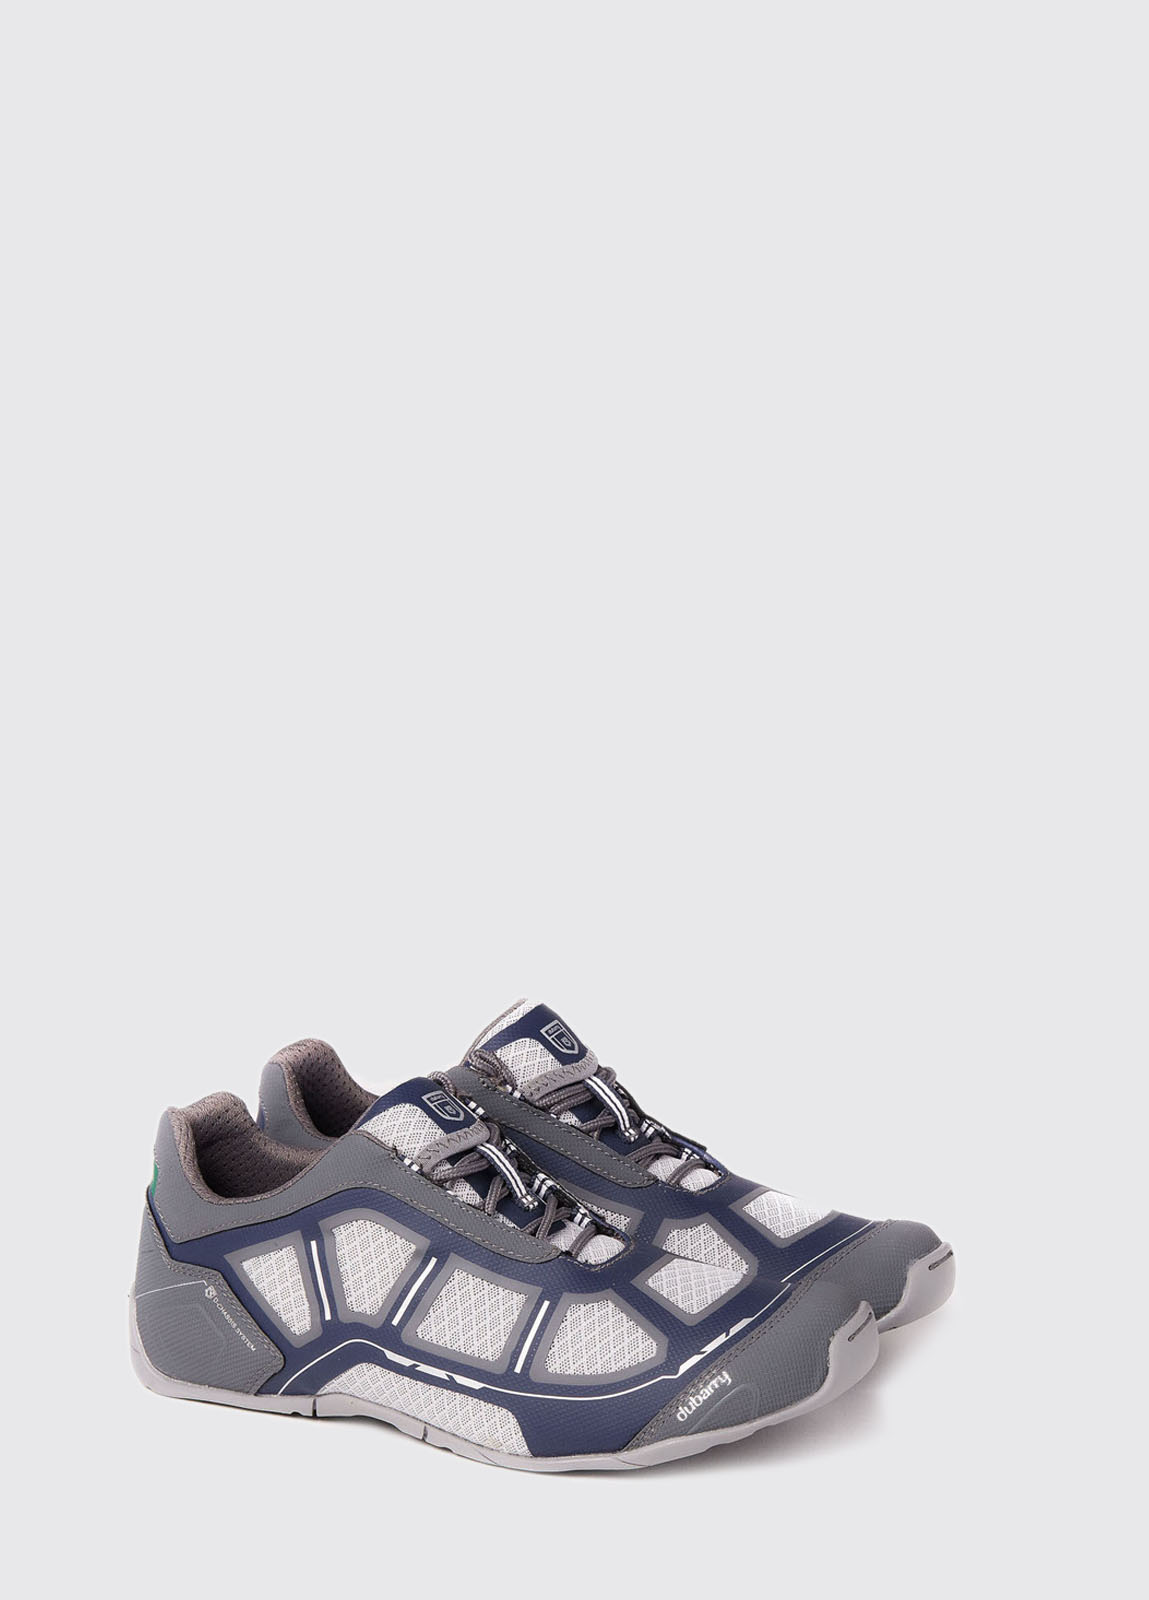 Easkey Sailing Shoe - Navy Multi